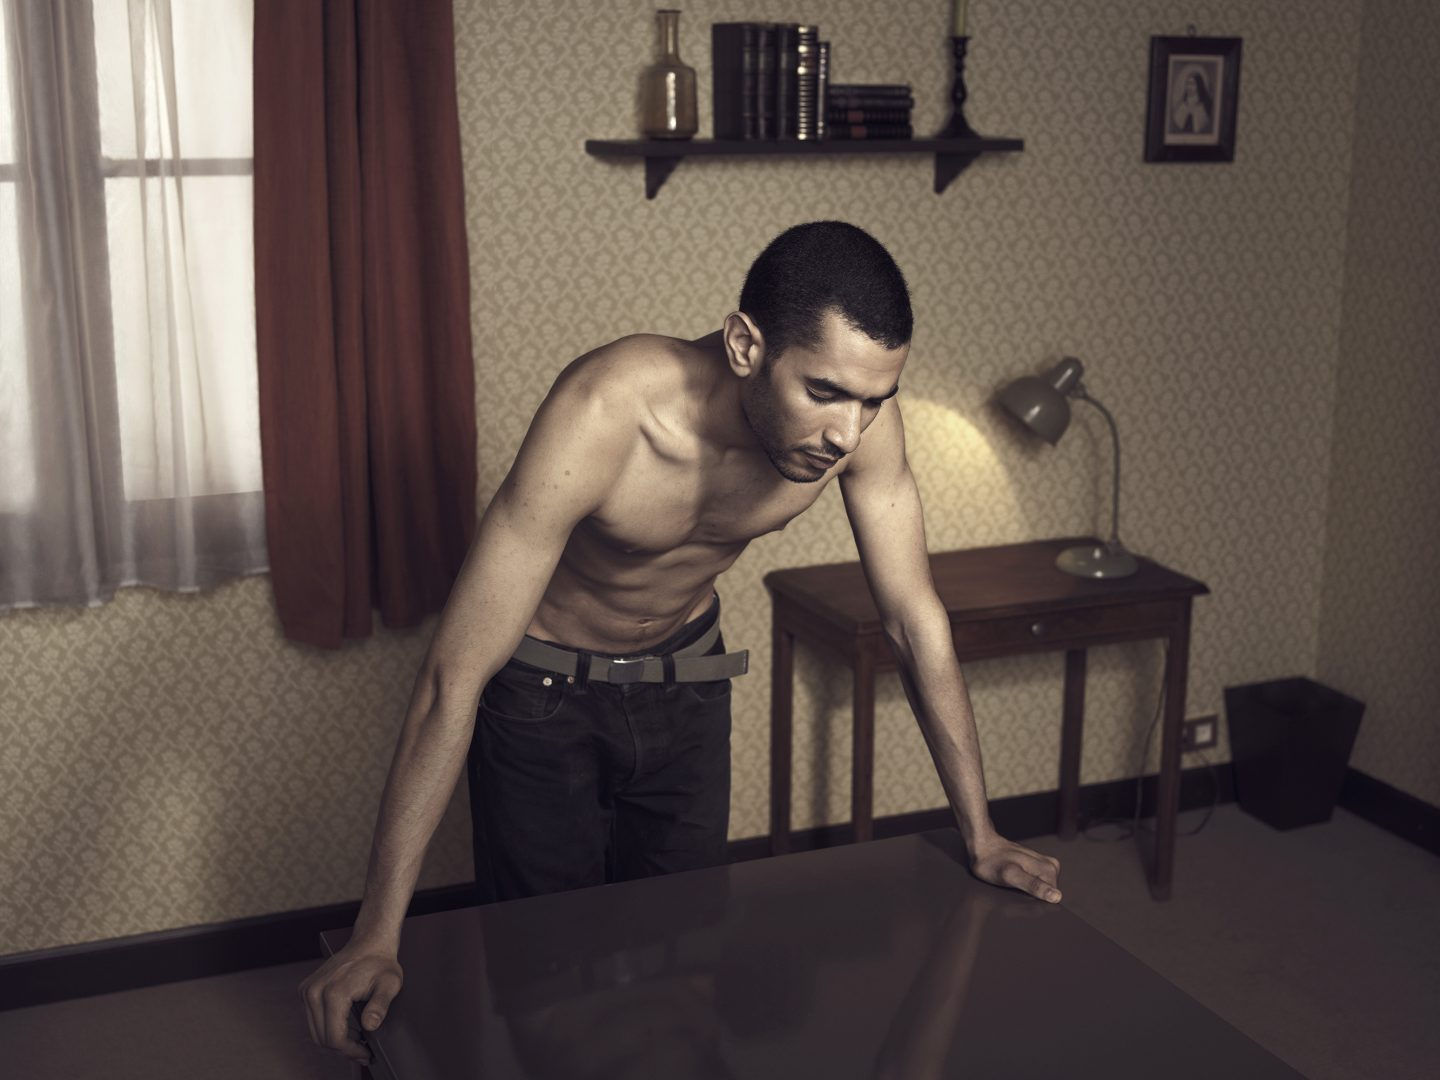 Man leaning on table in room 42 by Stefan Rappo